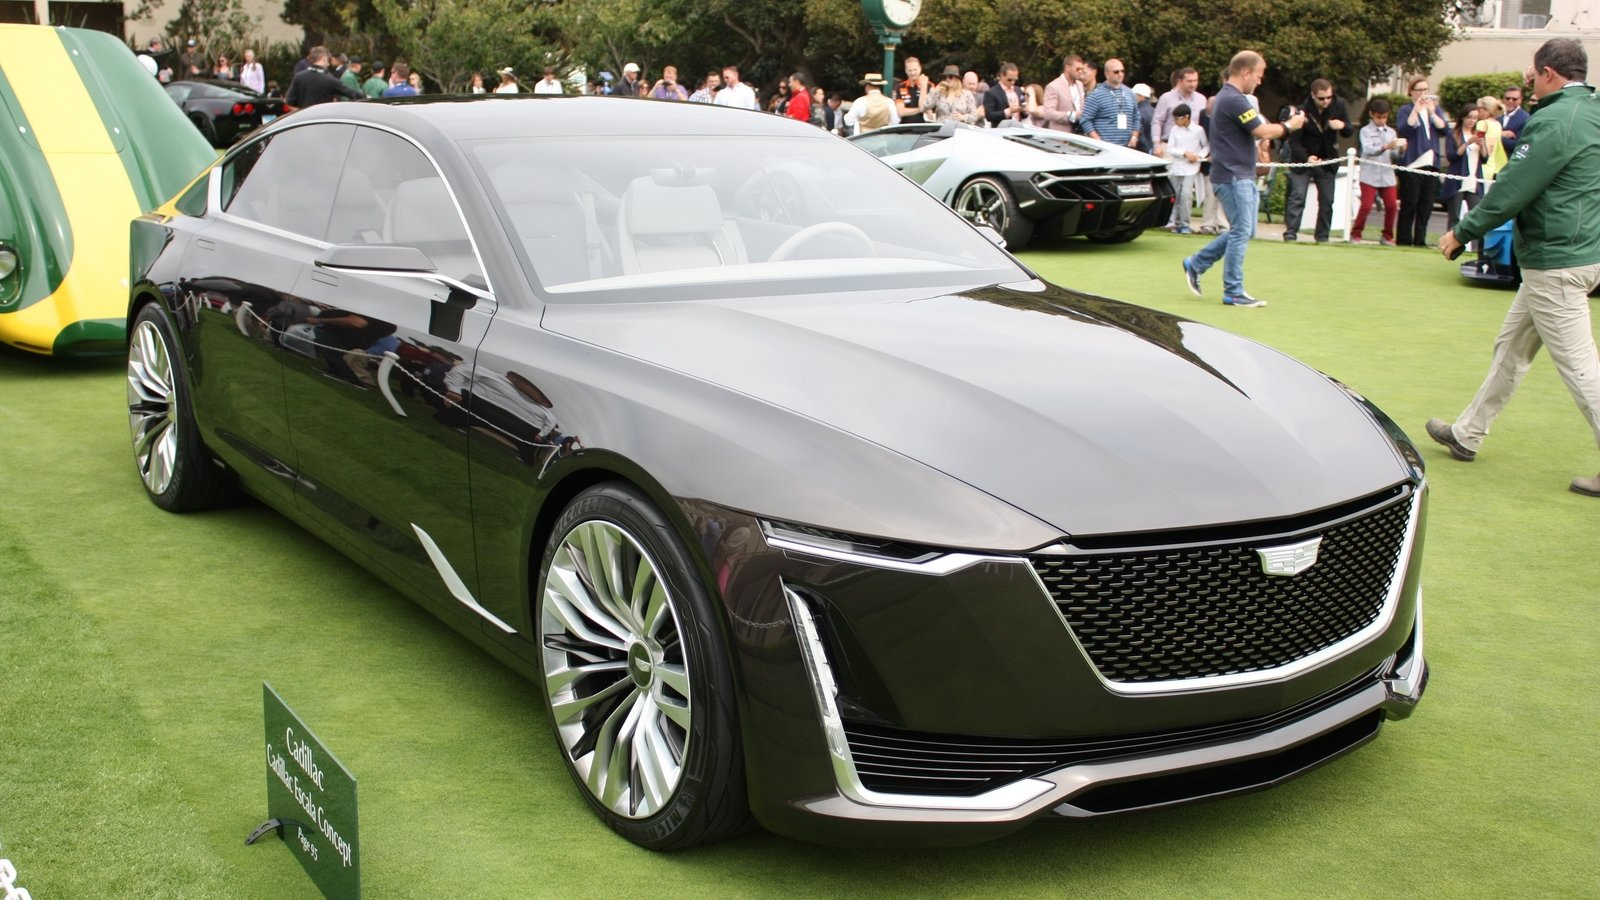 BMW, Audi, And Mercedes-Benz Get A Stay Of Execution As Cadillac Announces No Halo Vehicle Until ...